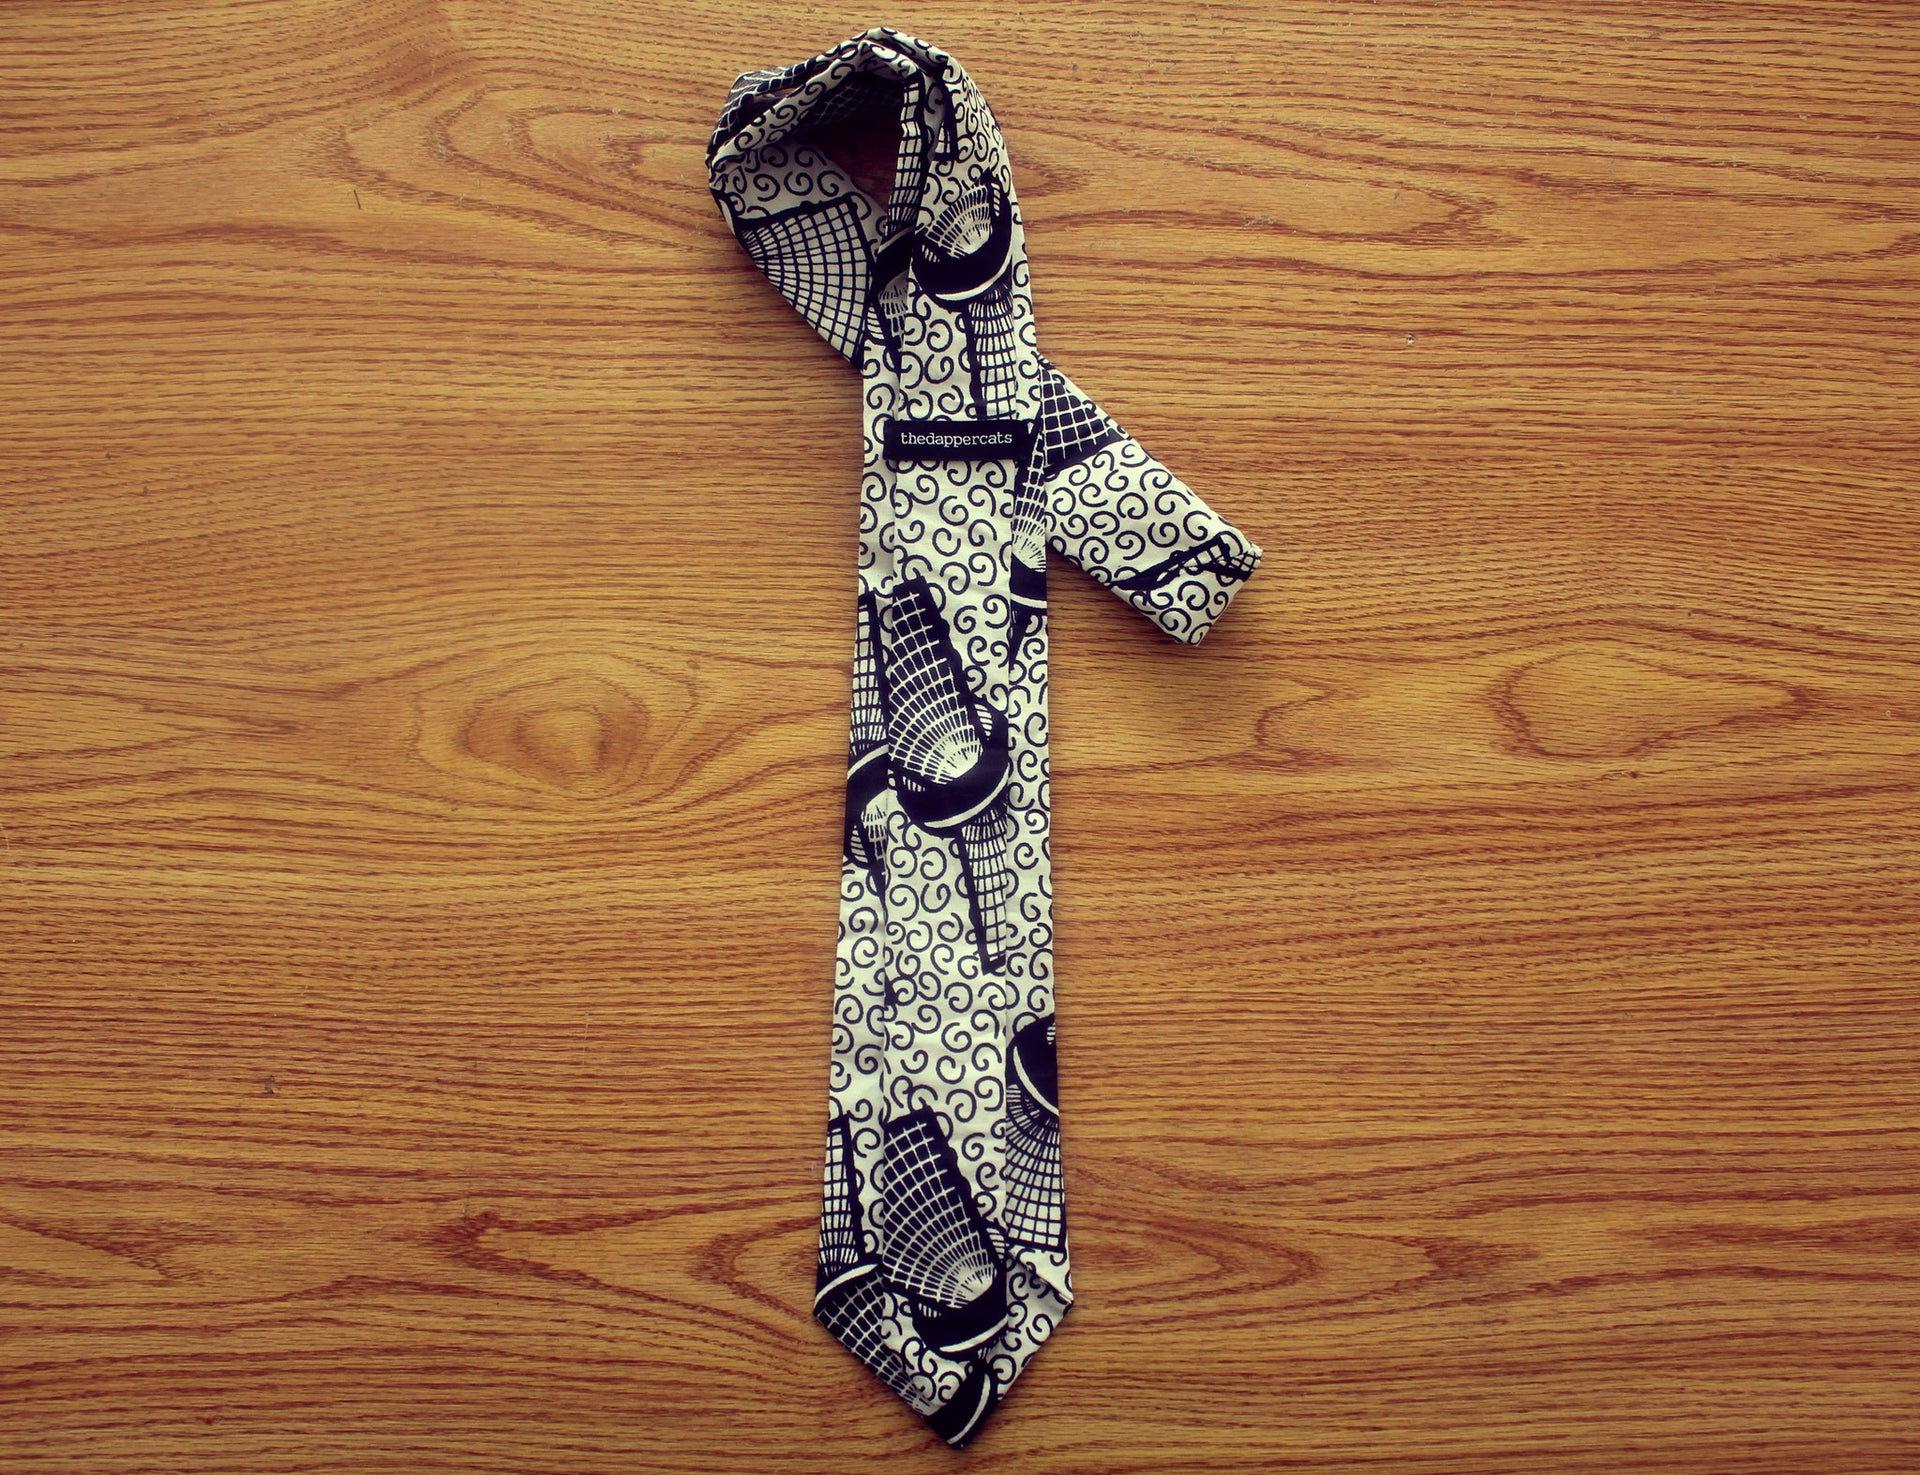 Kara (Cane) African Tie - Black and White - The Dapper Cats - 3